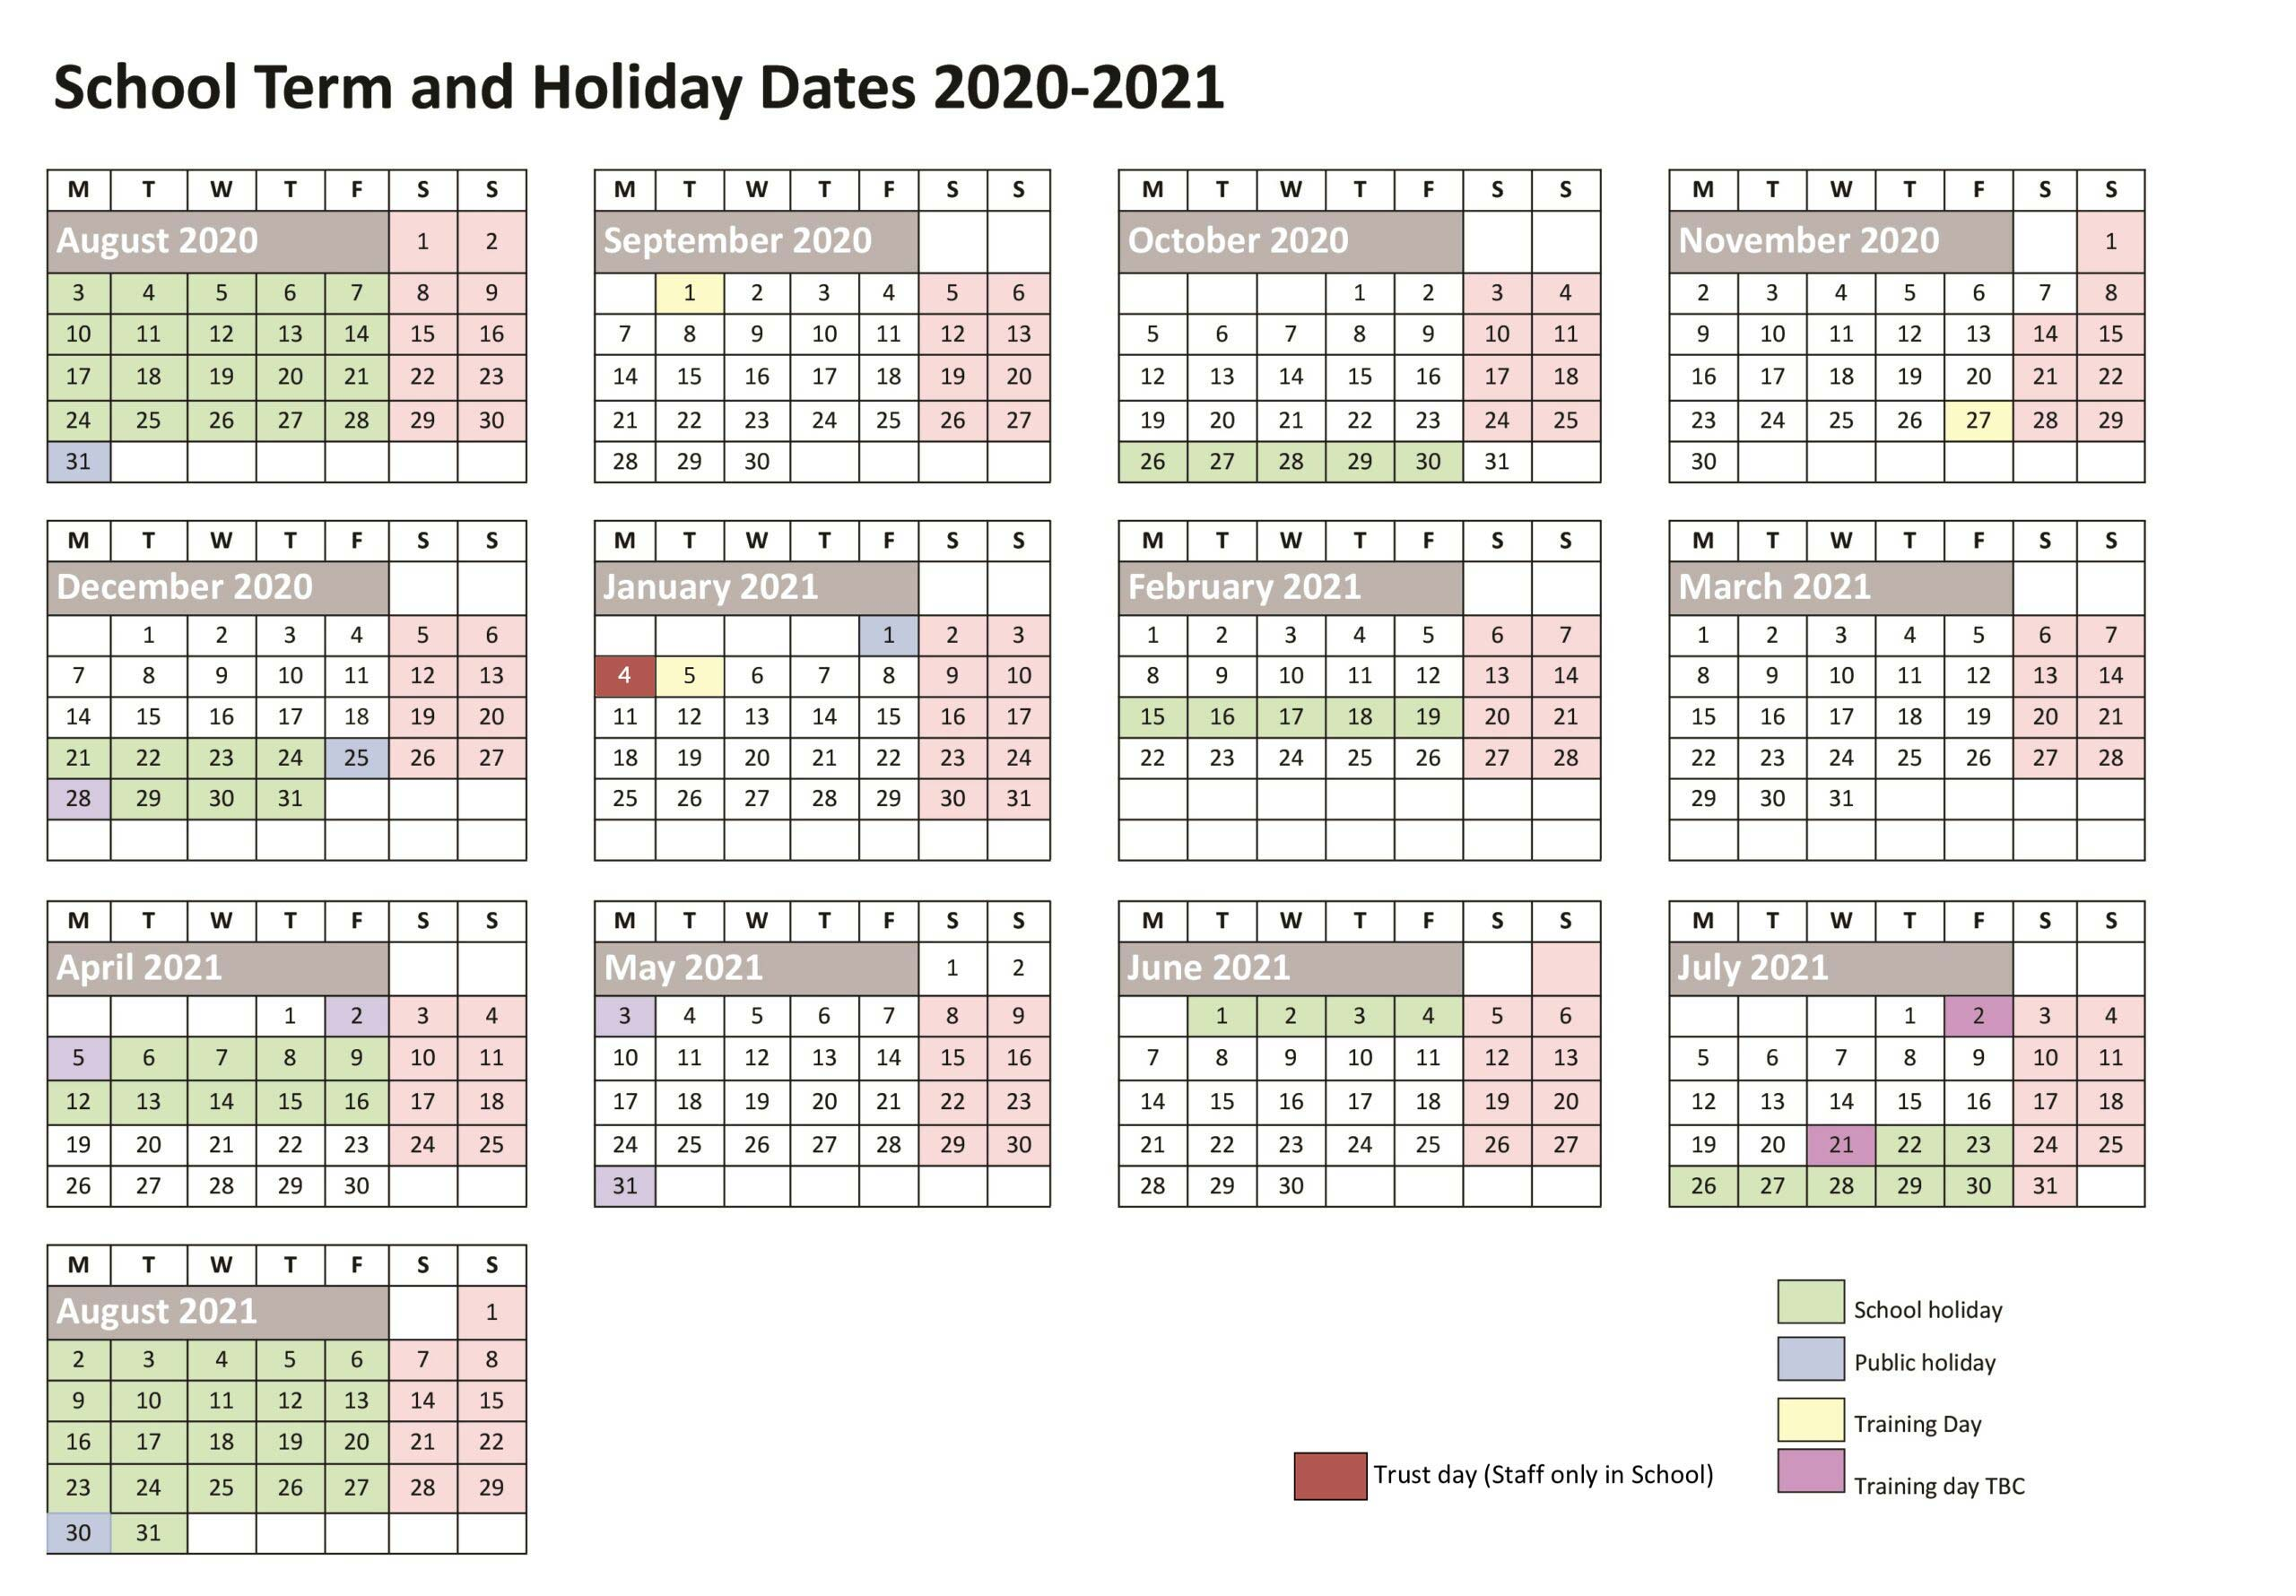 School-Term-Holiday-Dates-2020-Bloxwich-Academy-scaled